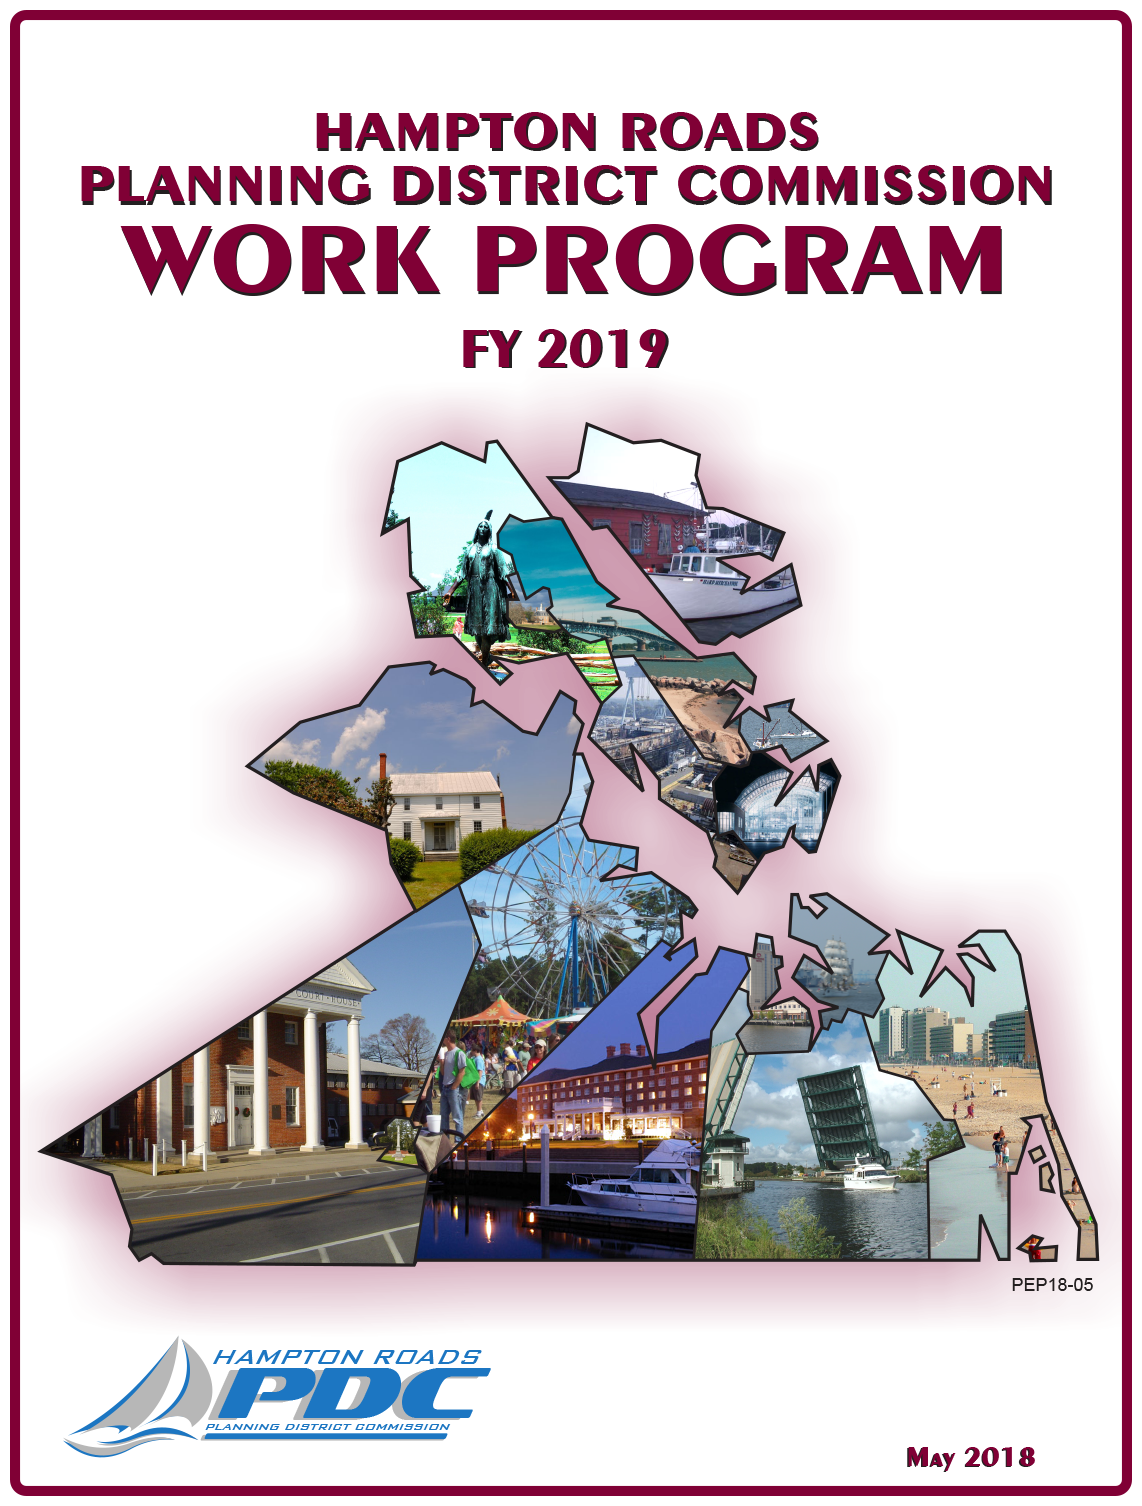 FY2019 HRPDC Work Program Cover